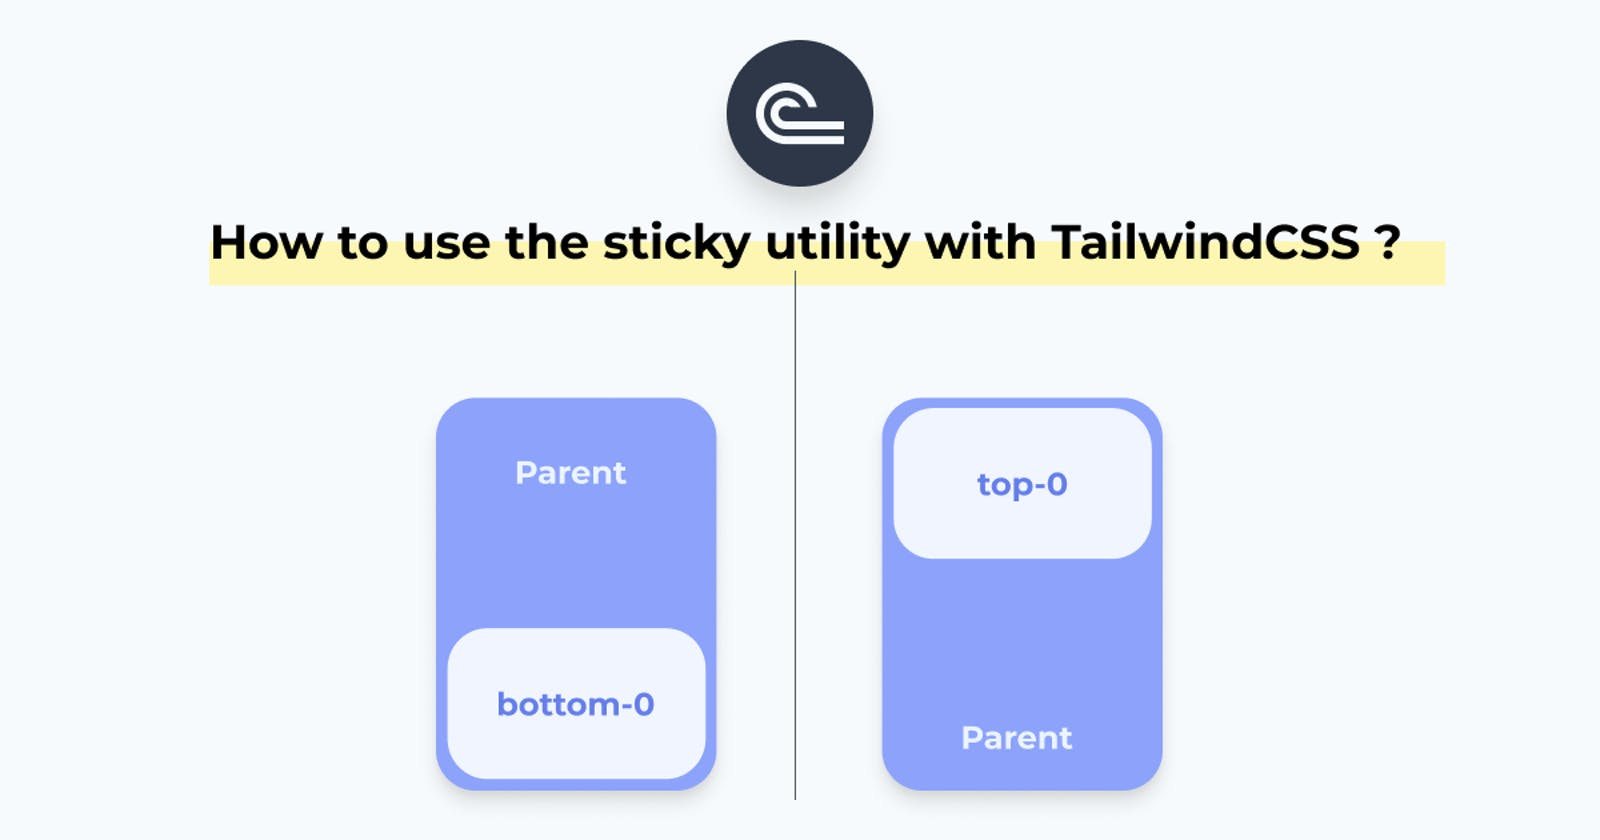 How to use the sticky utility in TailwindCSS?